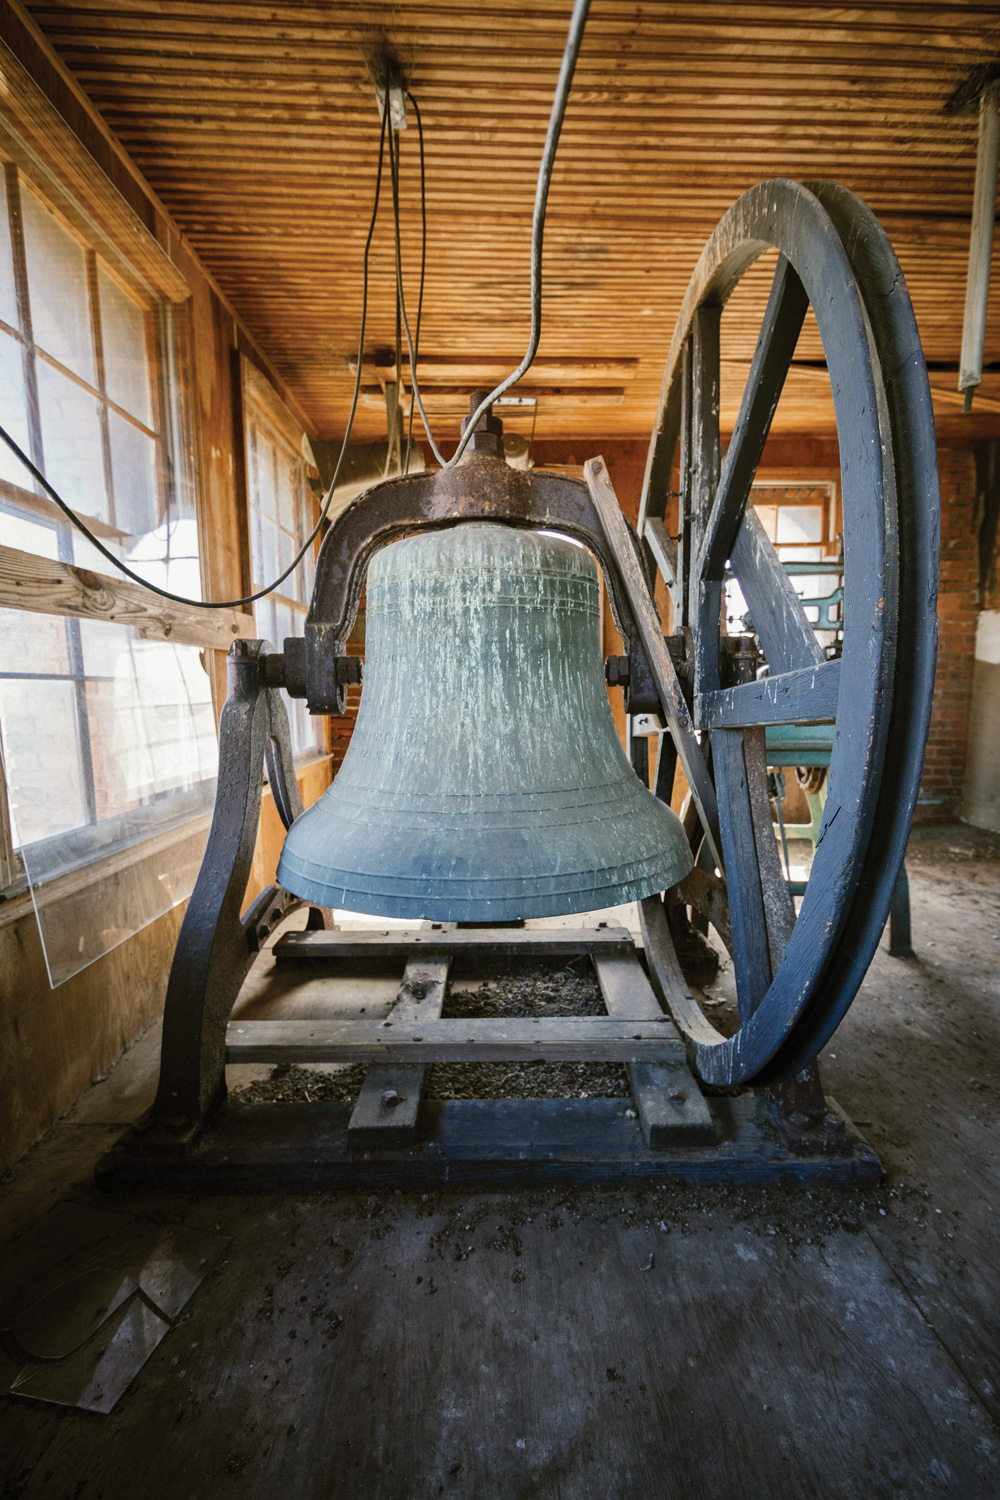 1880 bell in Fountain Hall's tower